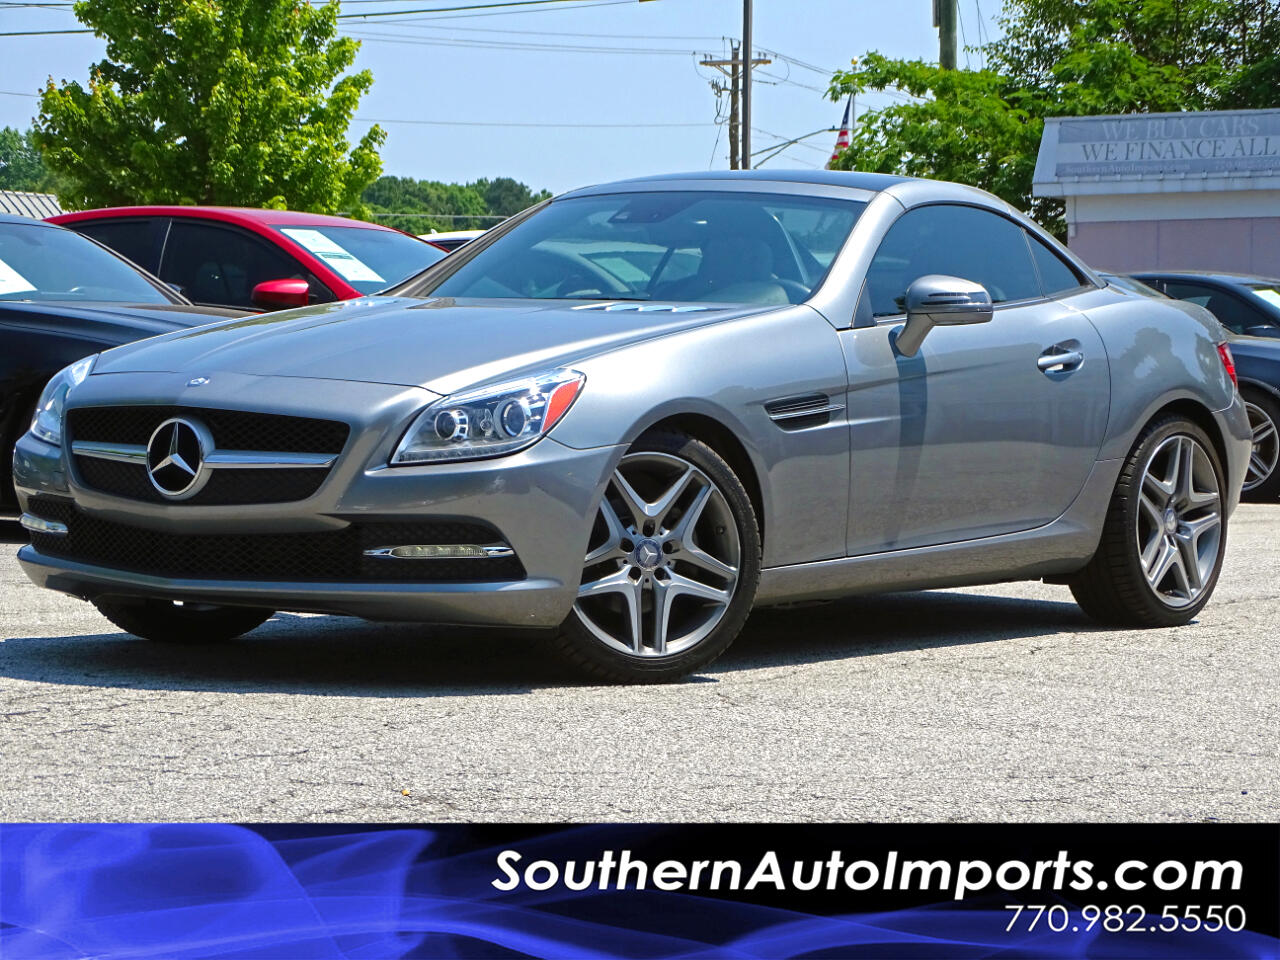 2014 Mercedes-Benz SLK-Class SLK 250 w/Glass Roof 1owner